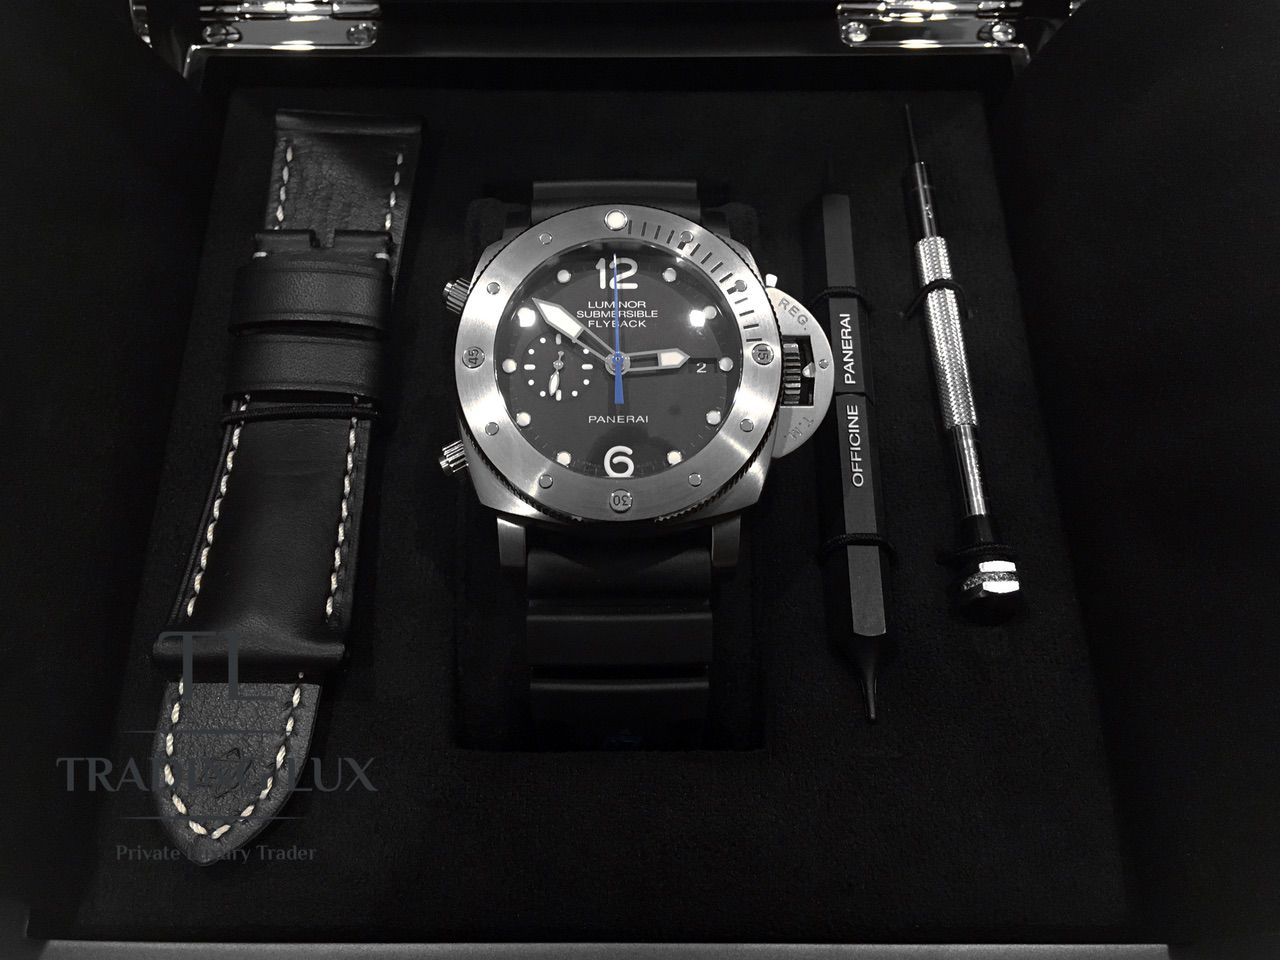 Panerai-Submersible-Chrono-PAM00614-19